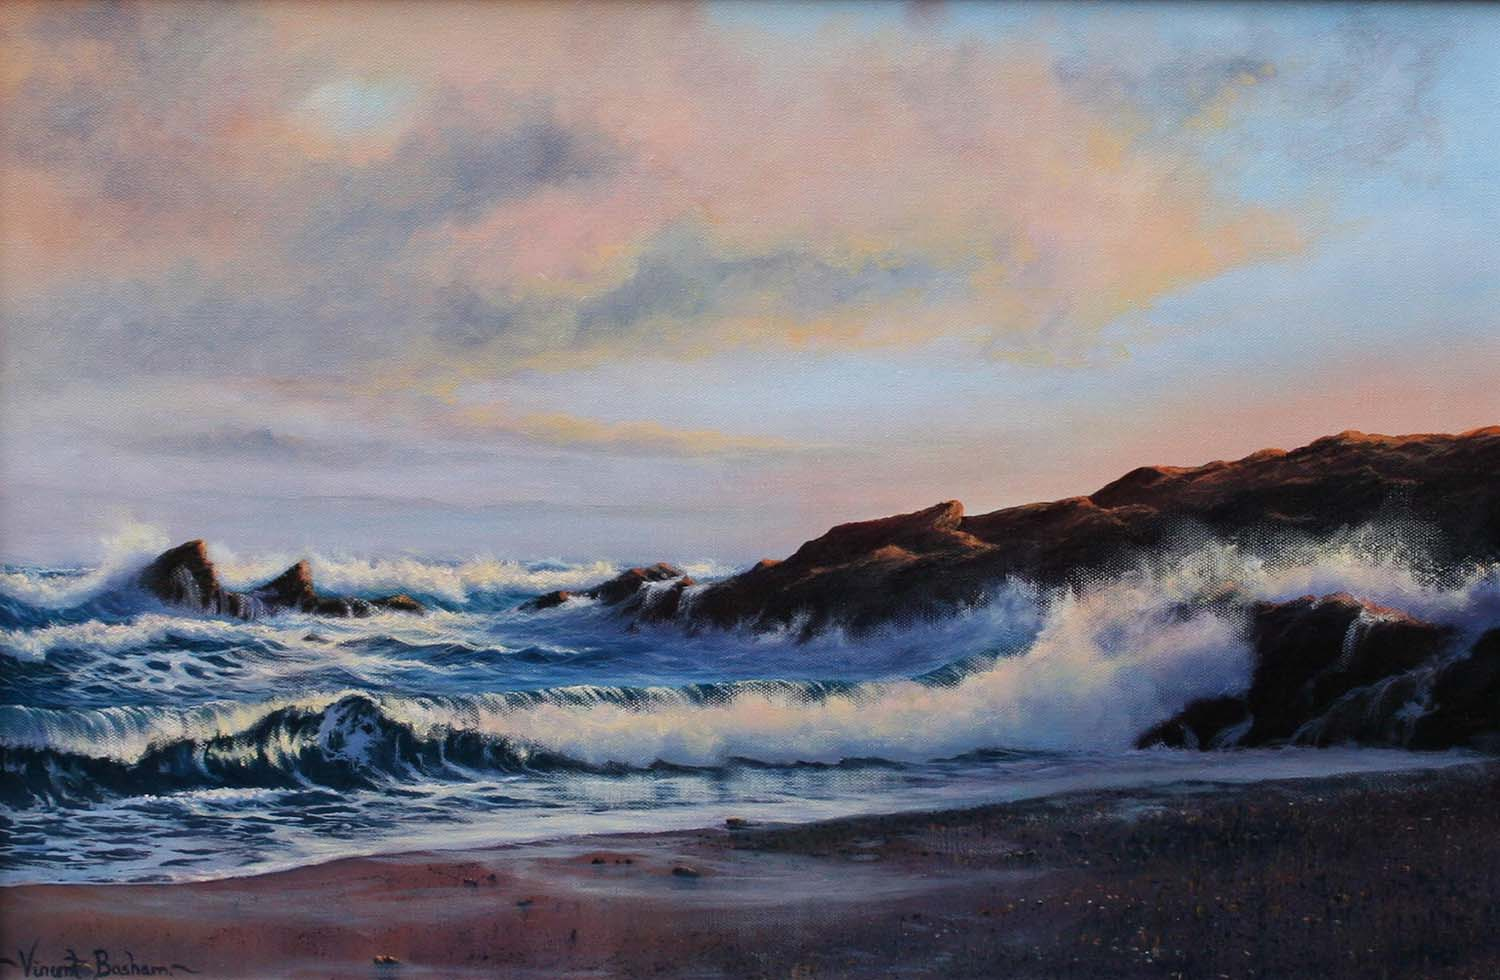 Sunrise at Little Fistral 400 x 600